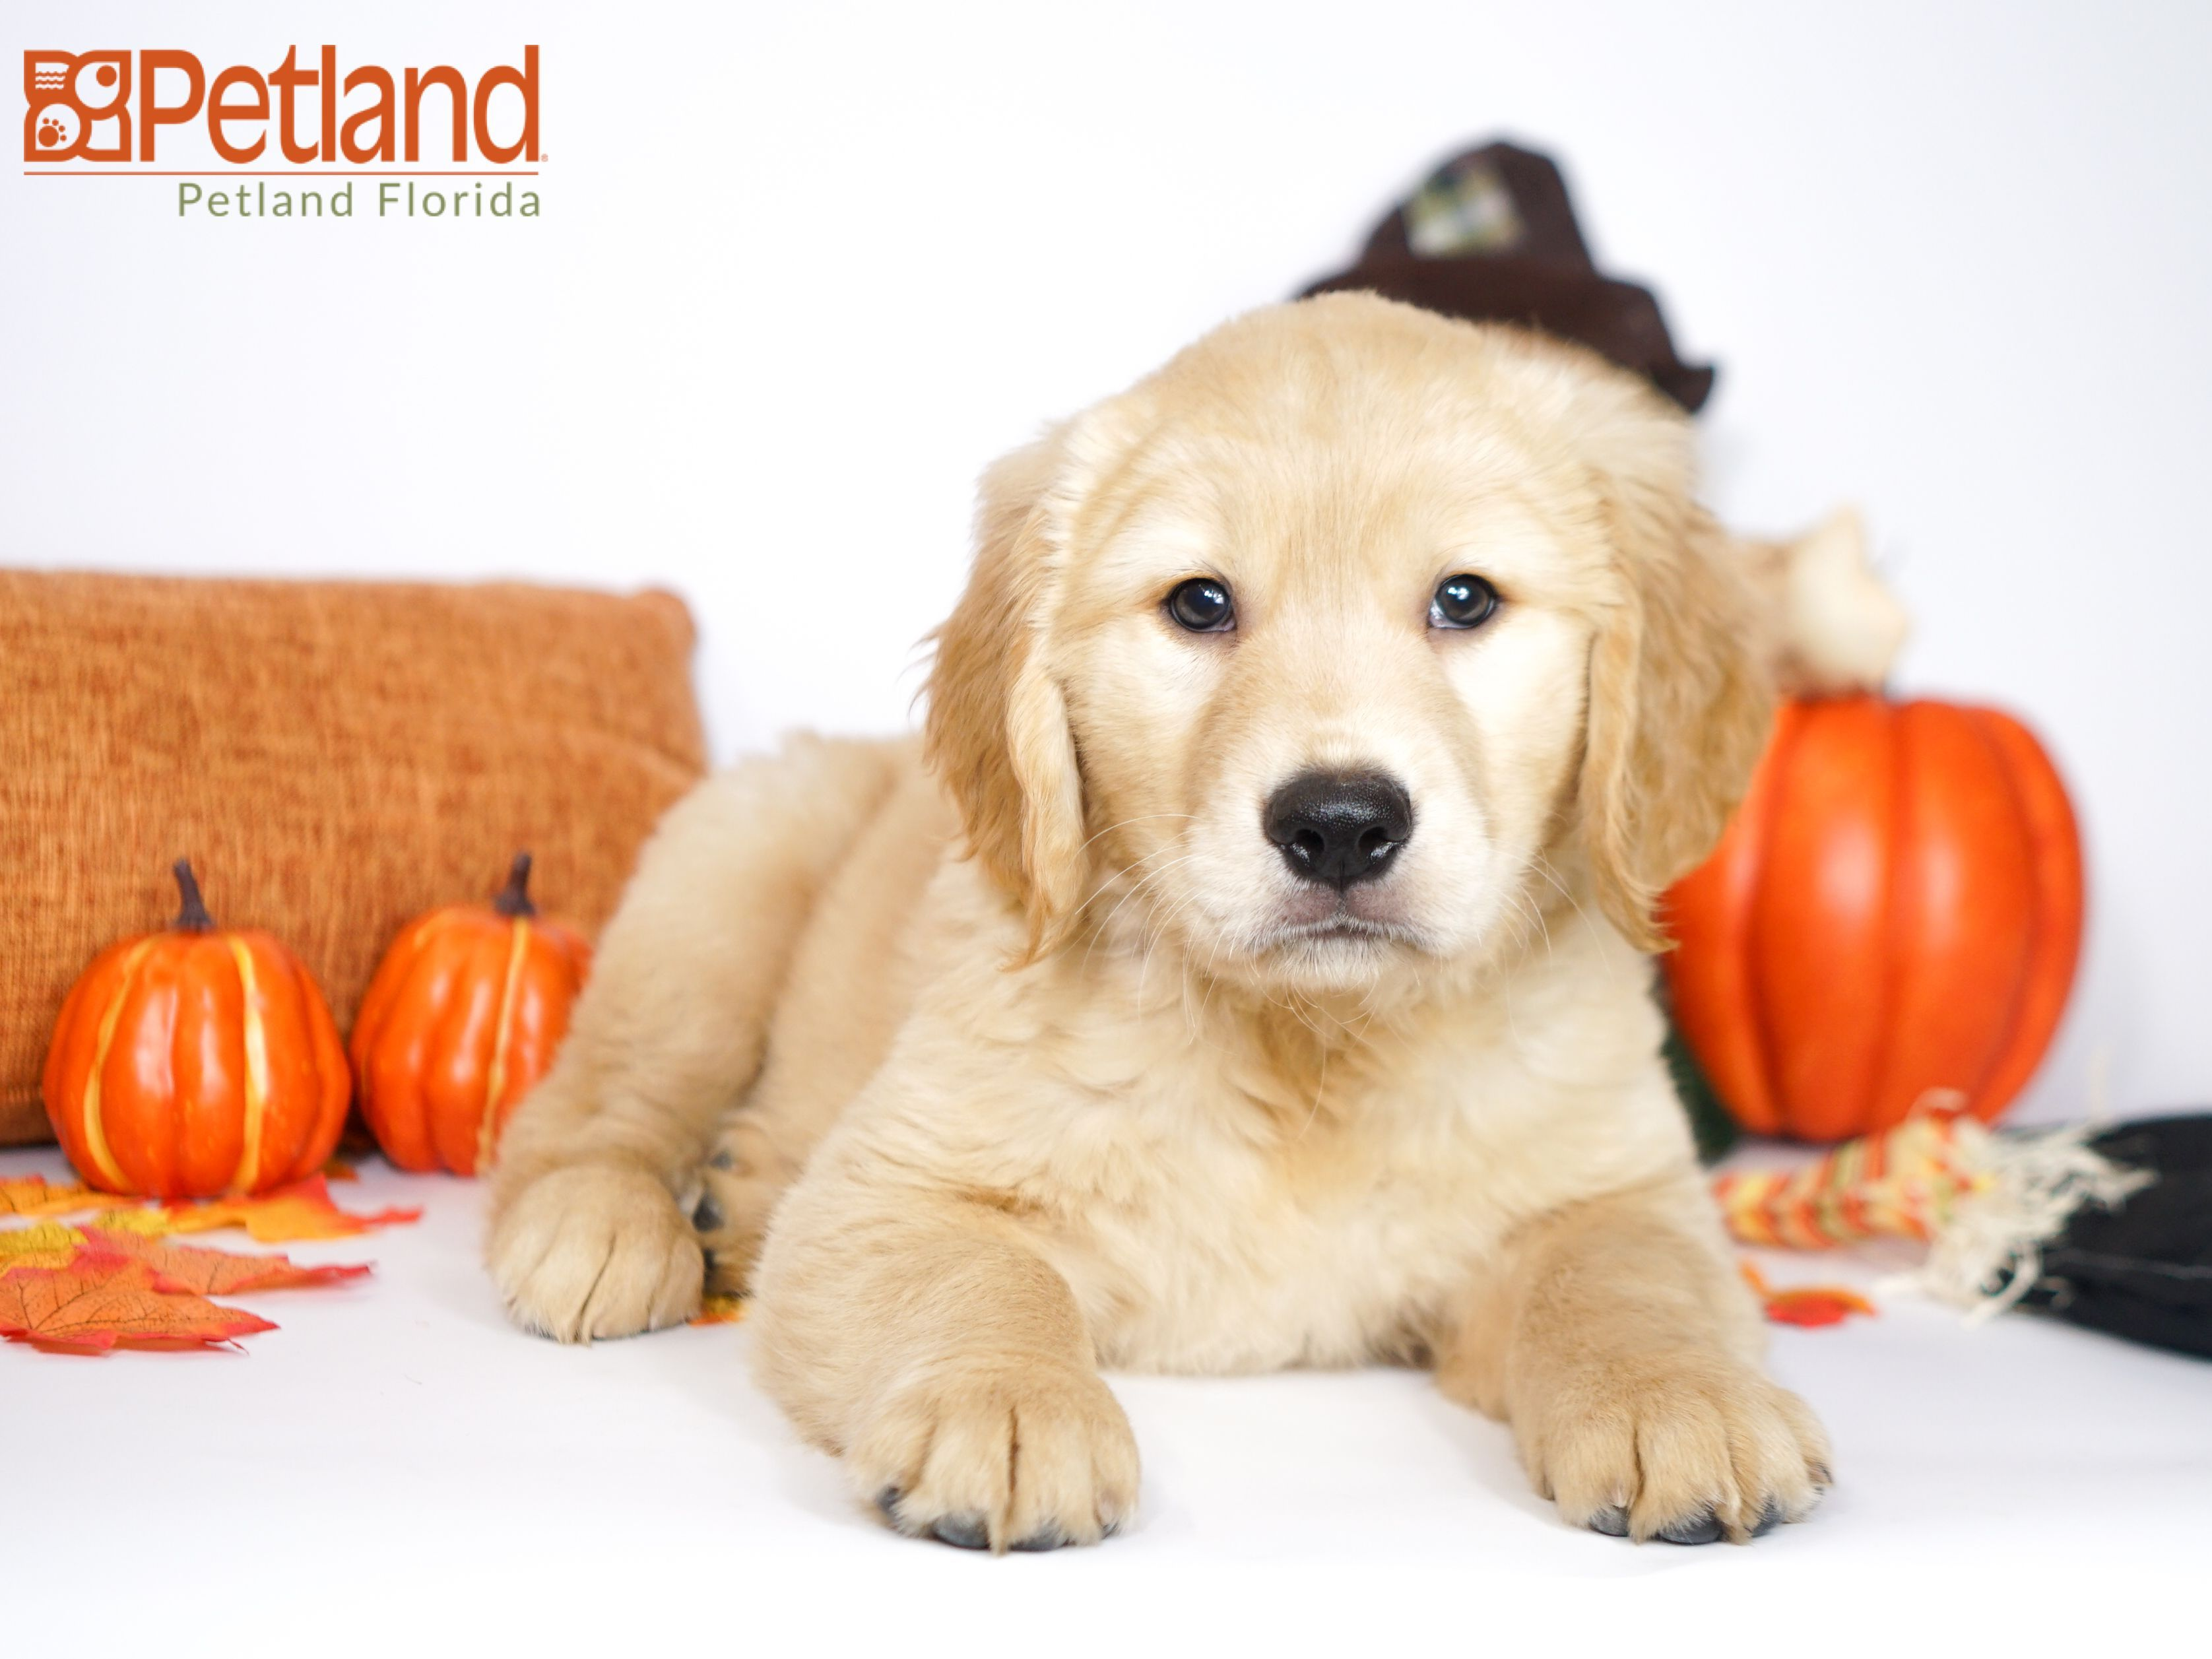 Puppies For Sale Dogs Golden Retriever Puppies Dog Lovers